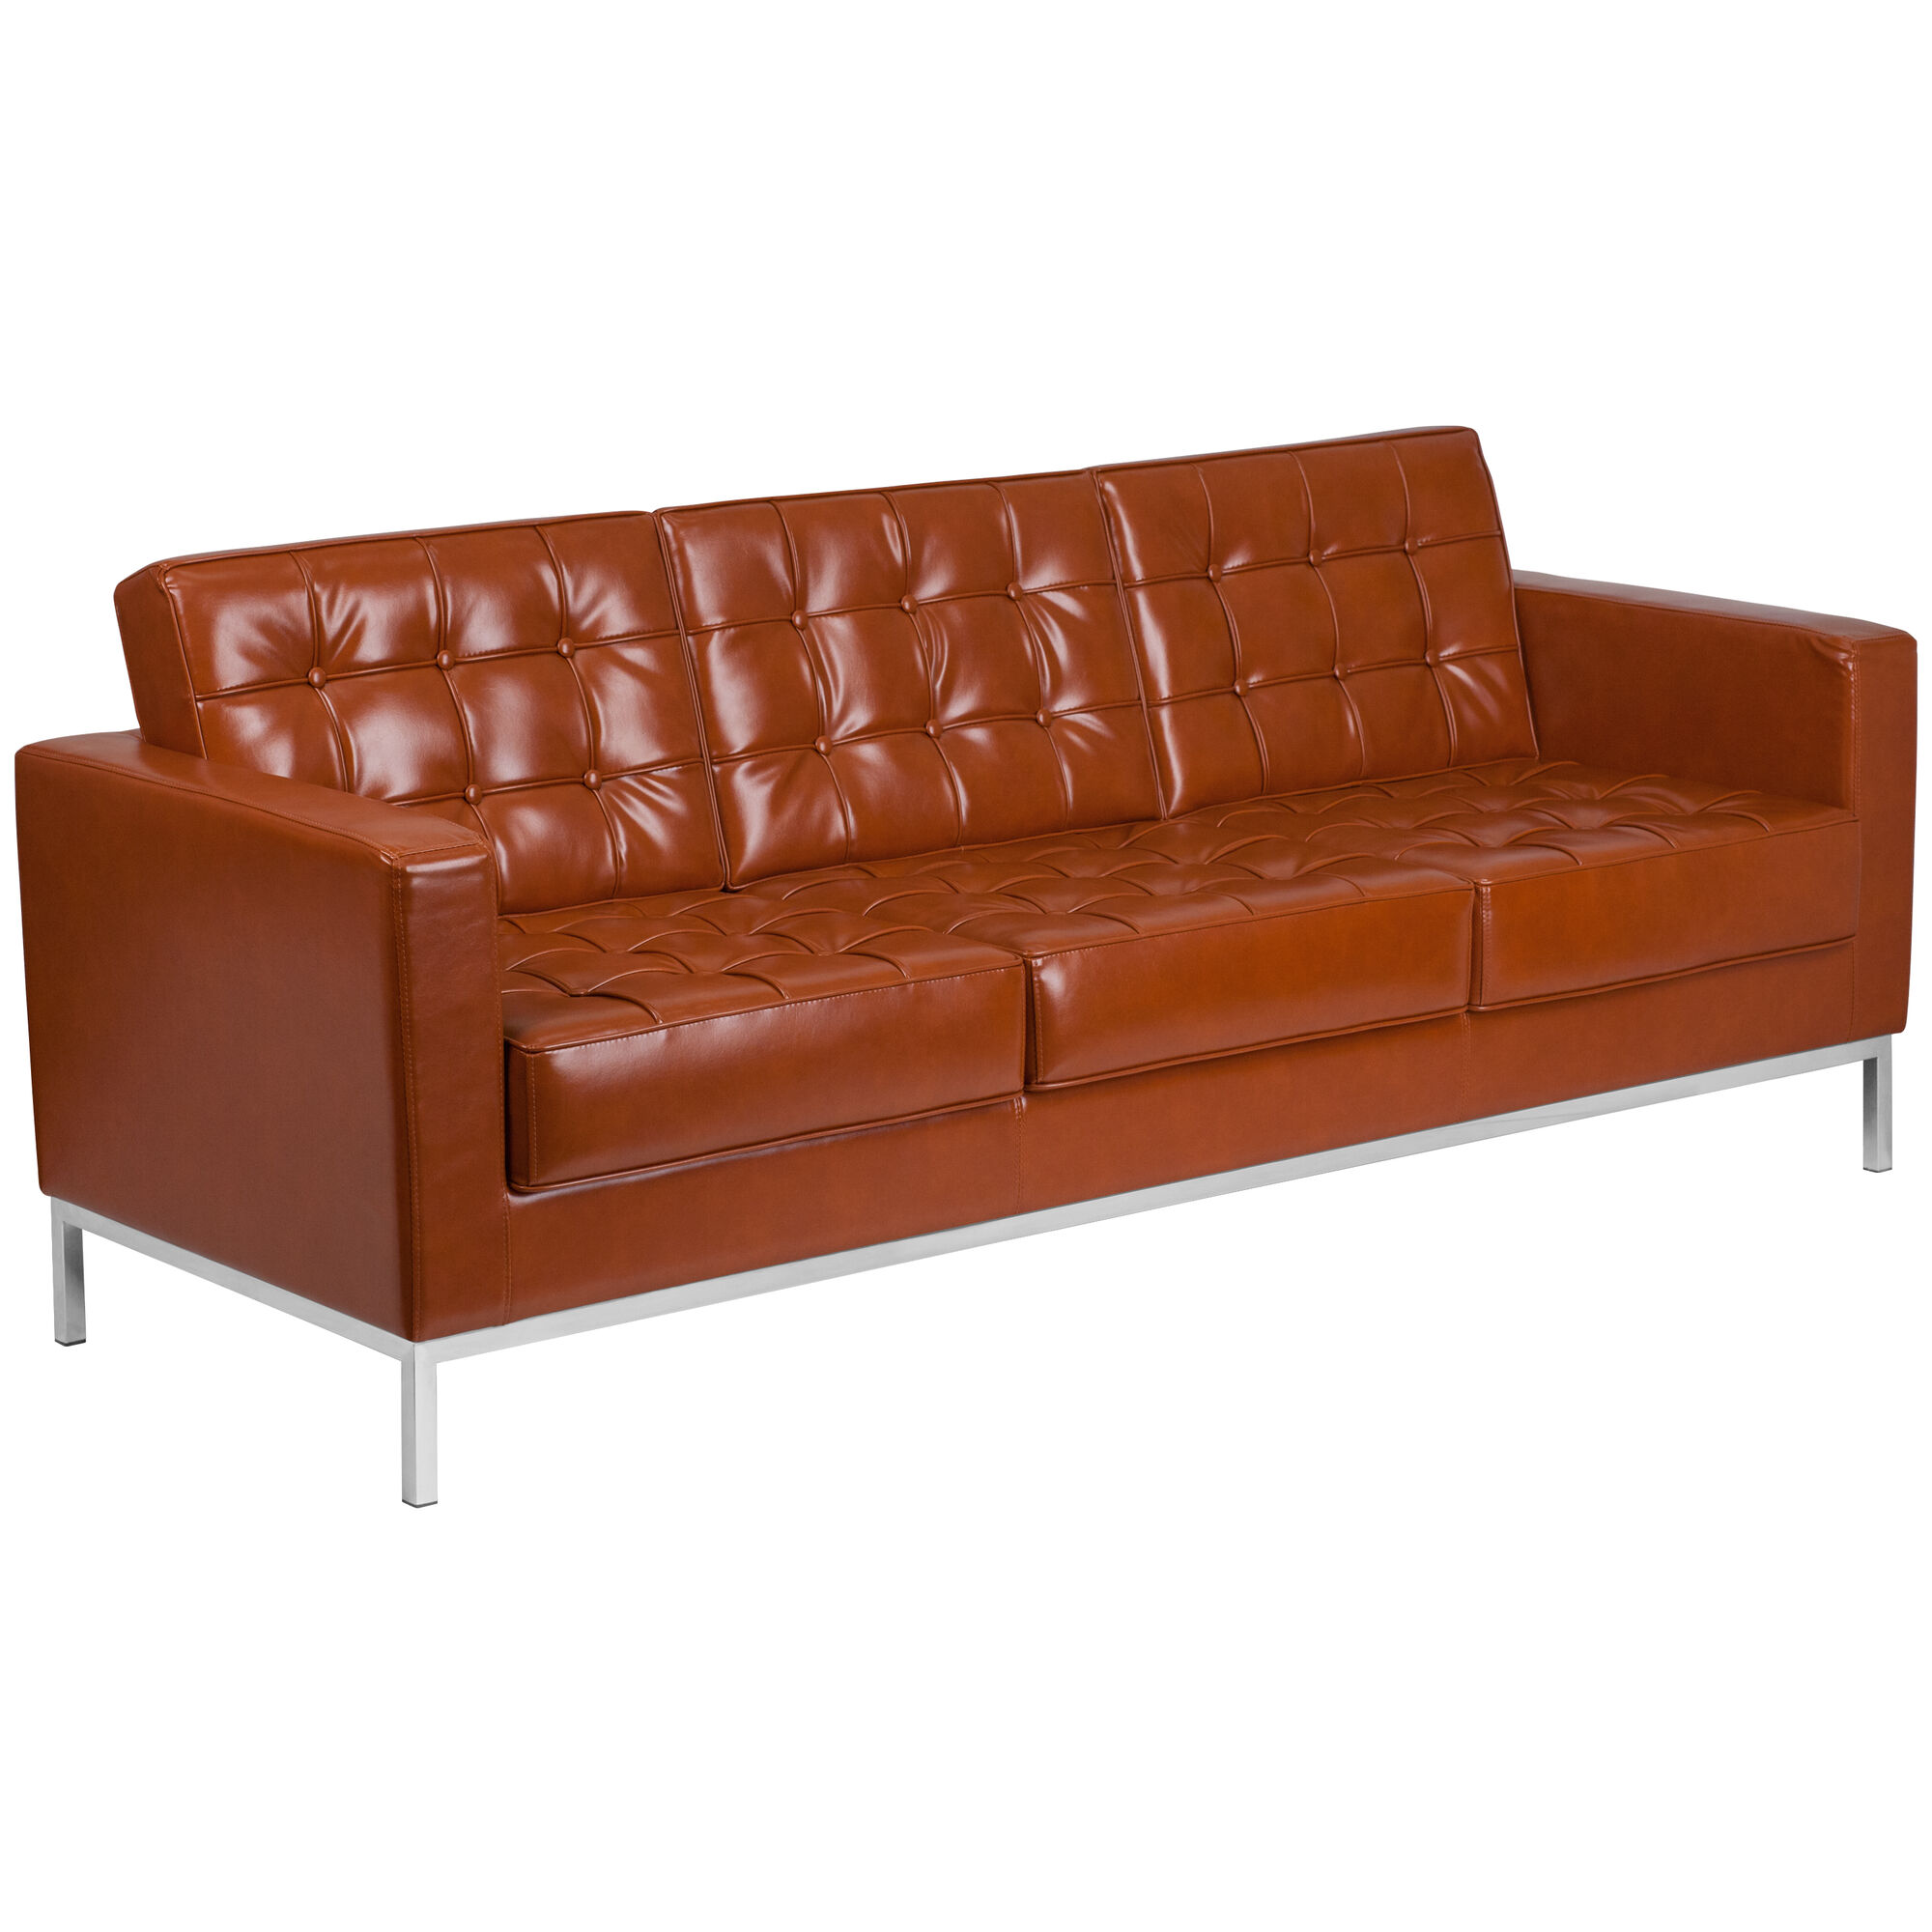 Hercules Lacey Series Contemporary Cognac Leather Sofa With Stainless Steel Frame